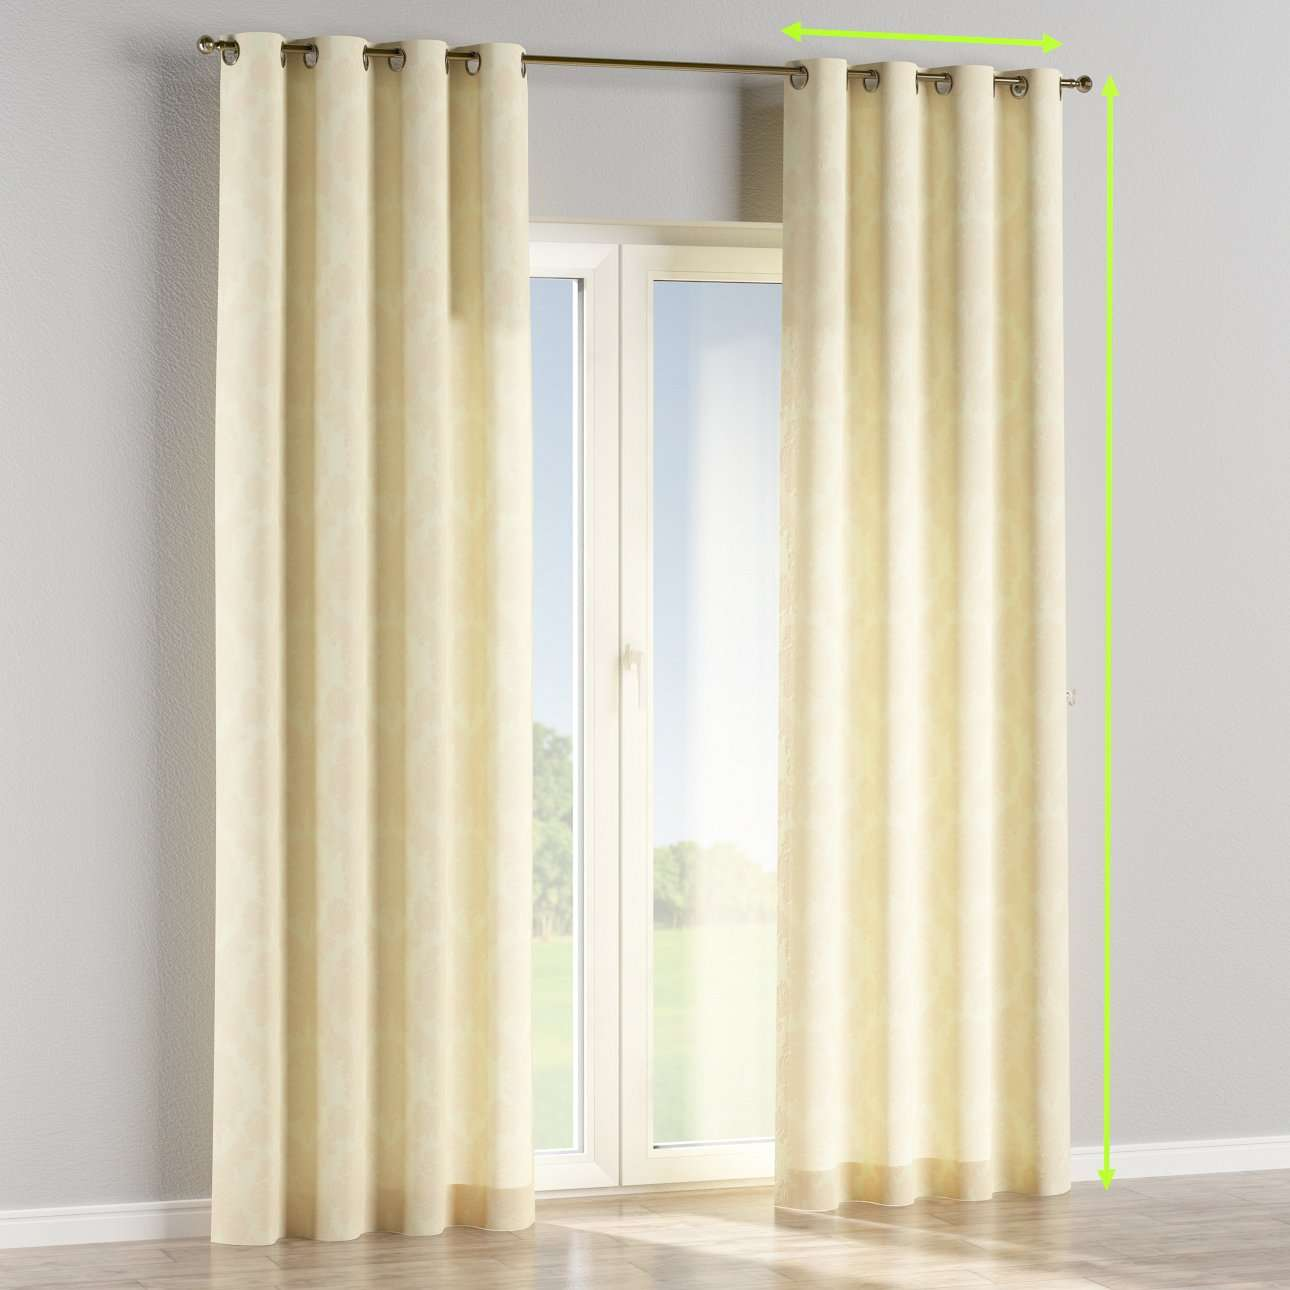 Eyelet lined curtains in collection Damasco, fabric: 613-01